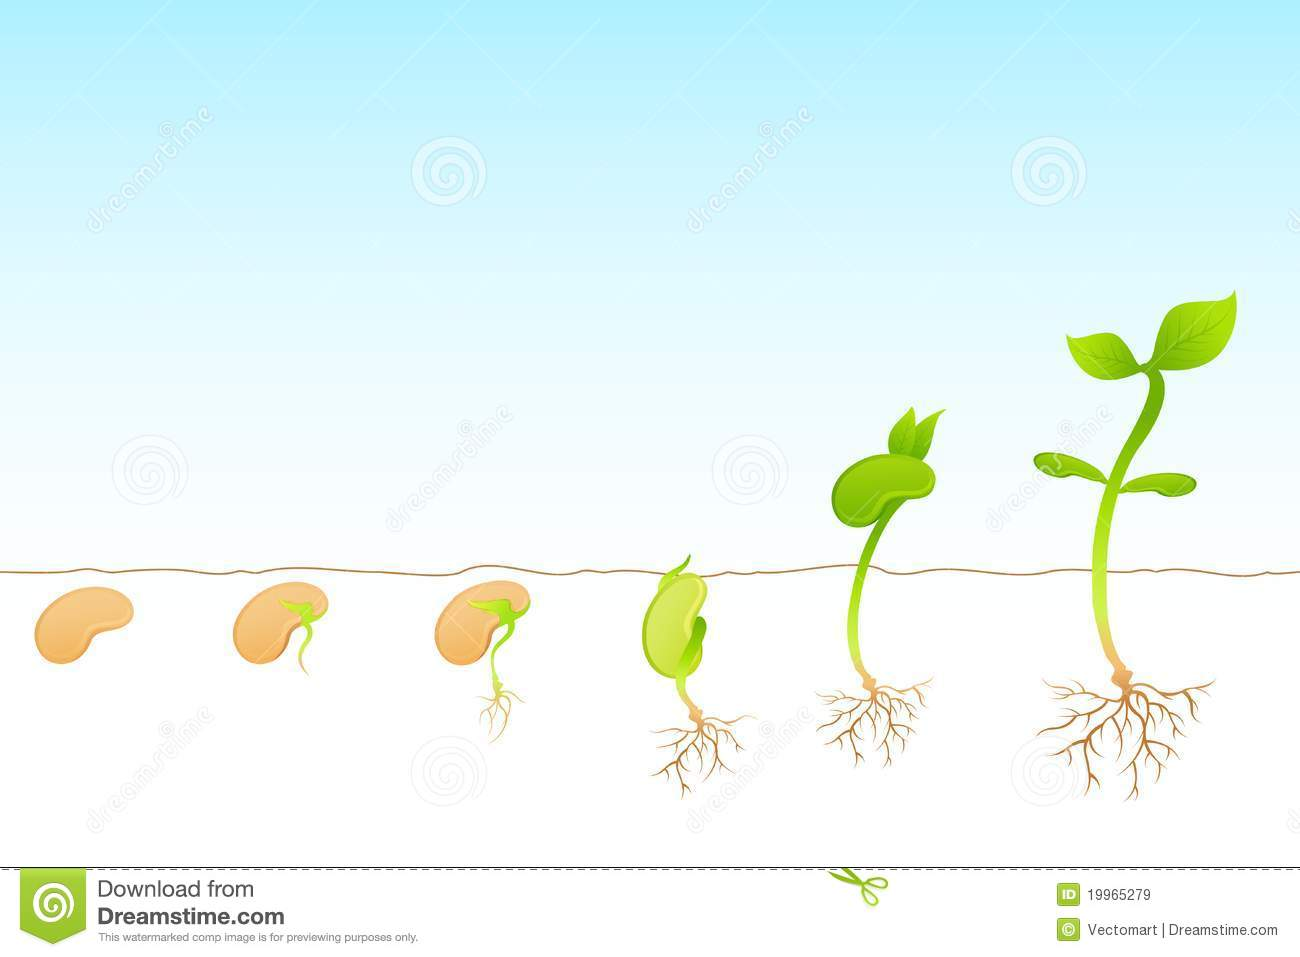 Plant Growth Royalty Free Stock Images - Image: 19965279